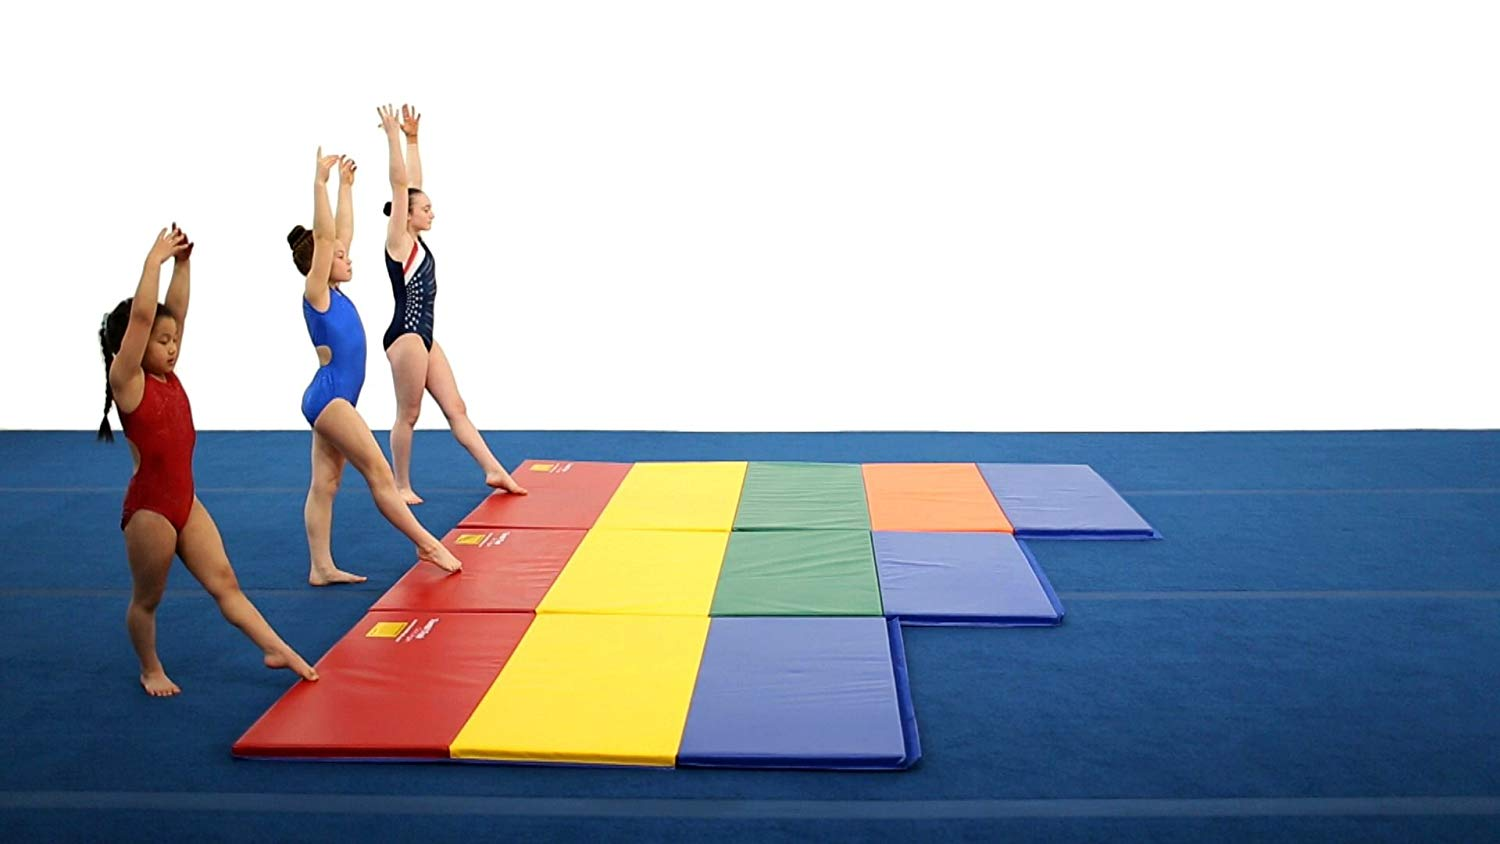 Cool gift ideas for tween girls: A top rated gymnastics mat